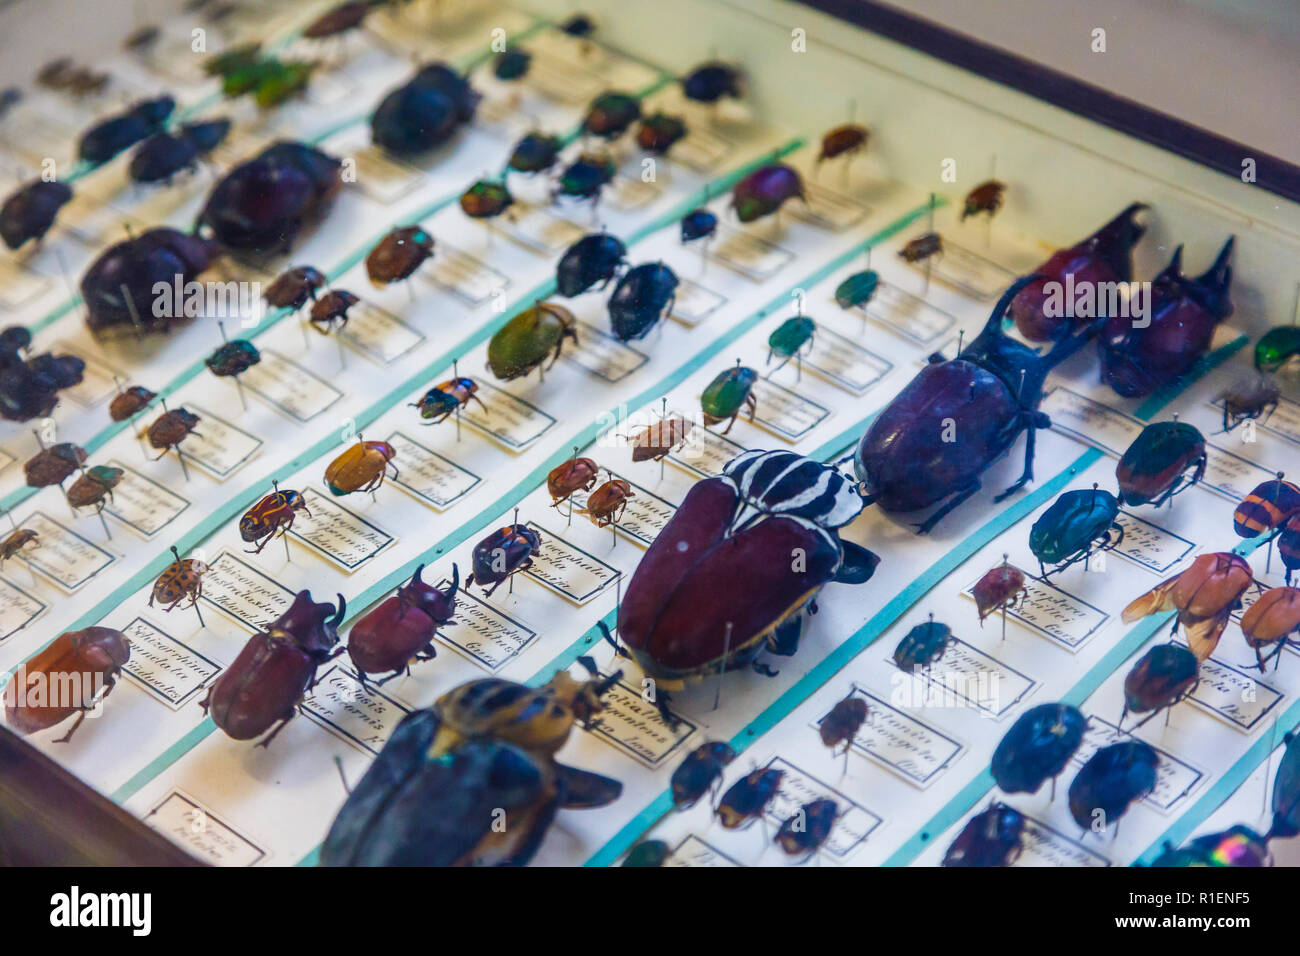 Beetles showcase. - Stock Image